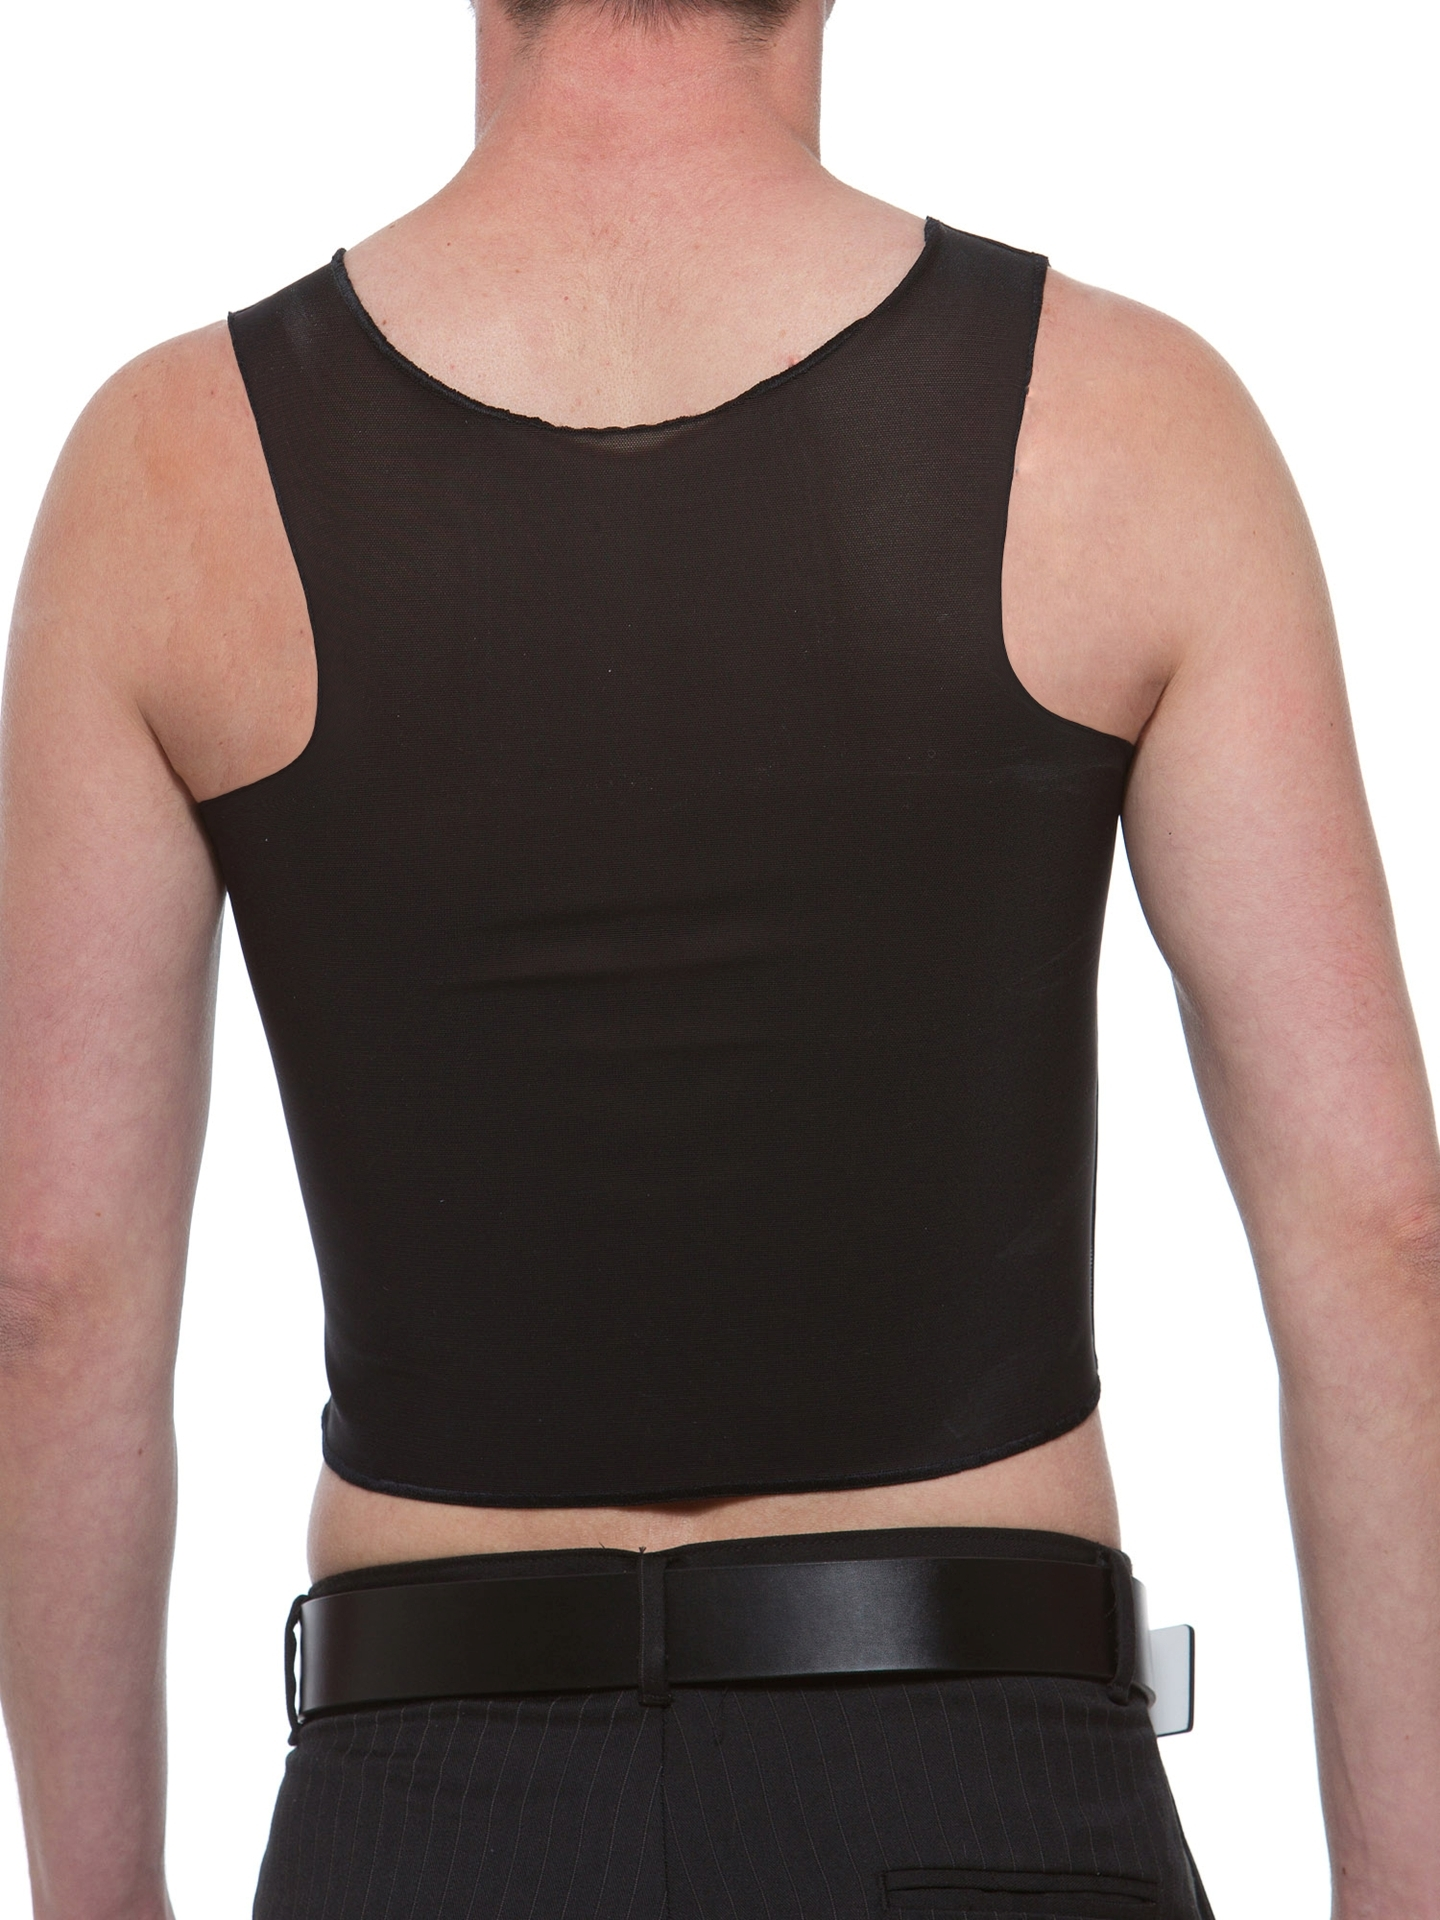 Picture of The Cotton Lined Power Chest Binder Top